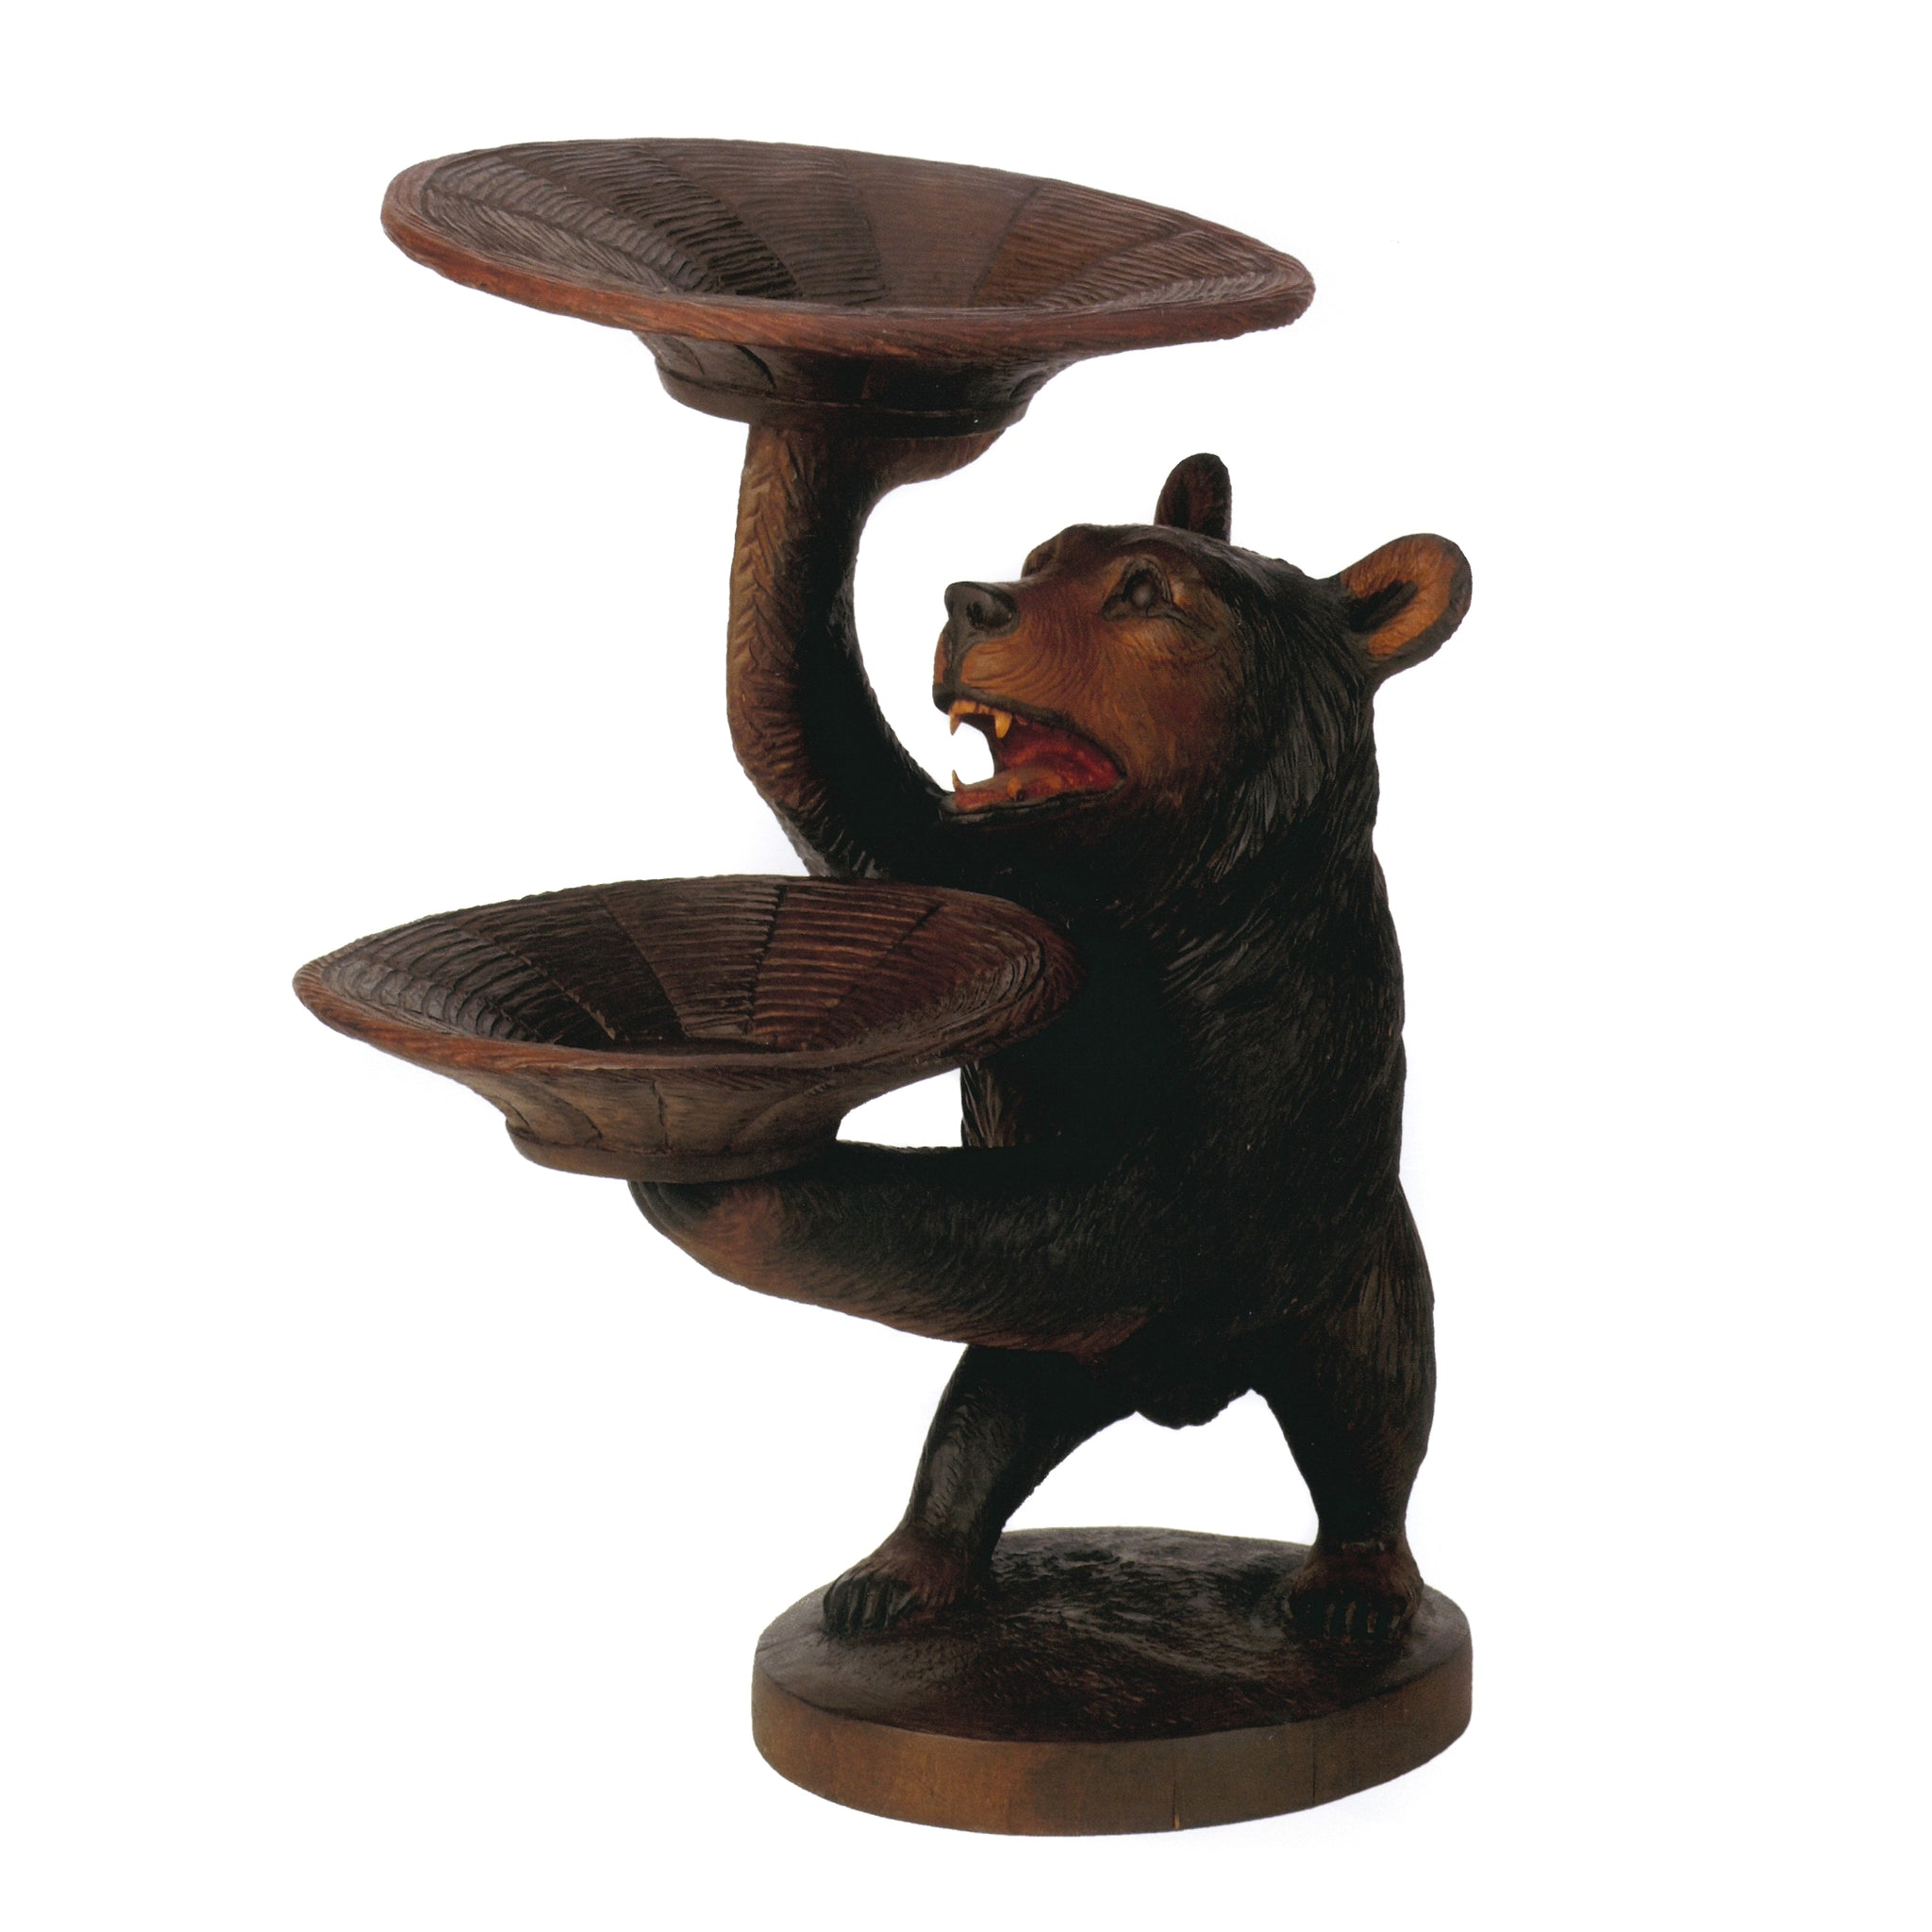 Carved Bear Holding Bowls bears, brienz collection, swiss carvings